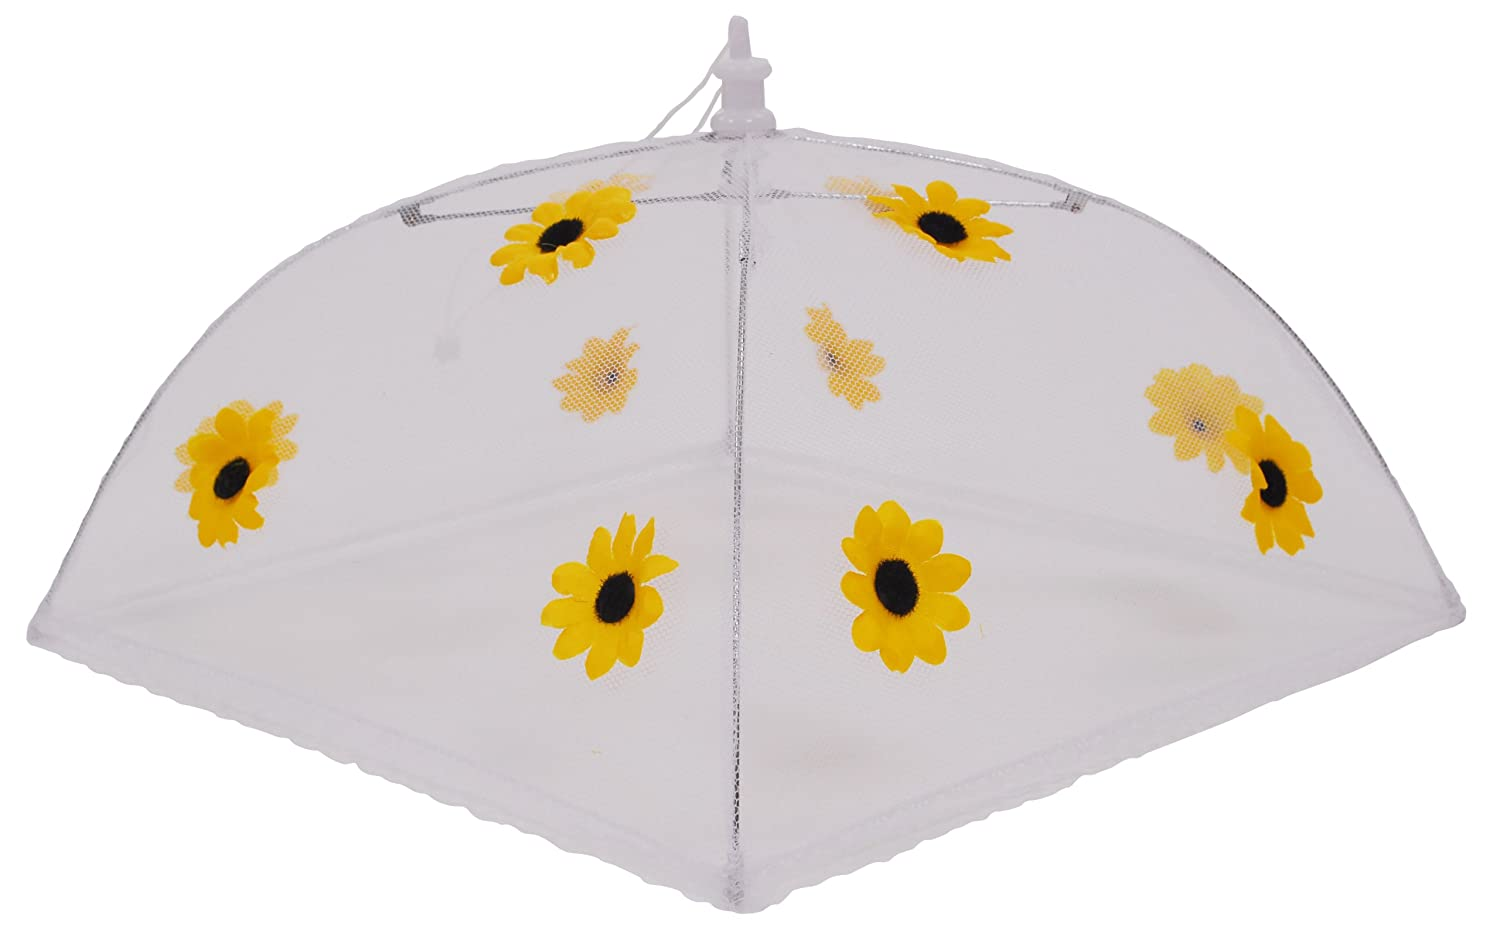 Epicurean Europe 30 x 30 cm Polyester with Zinc Plated Steel Frame Food Cover Umbrella with Yellow and Black Sunflower Design Epicurean Europe Ltd 39JN1124